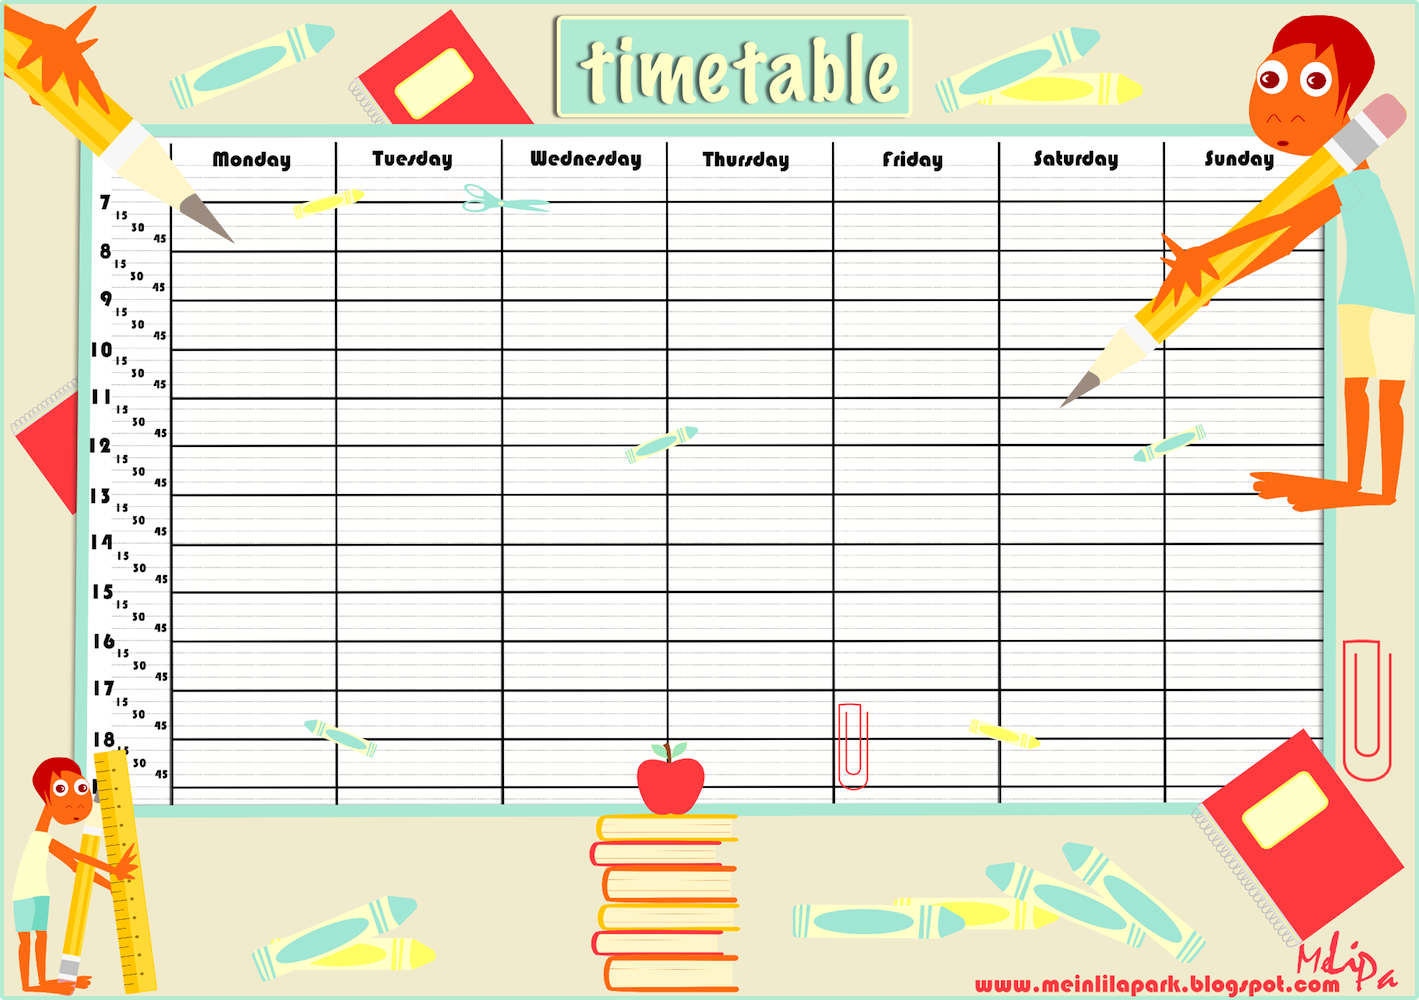 Schedule clipart printable. Free school timetable and